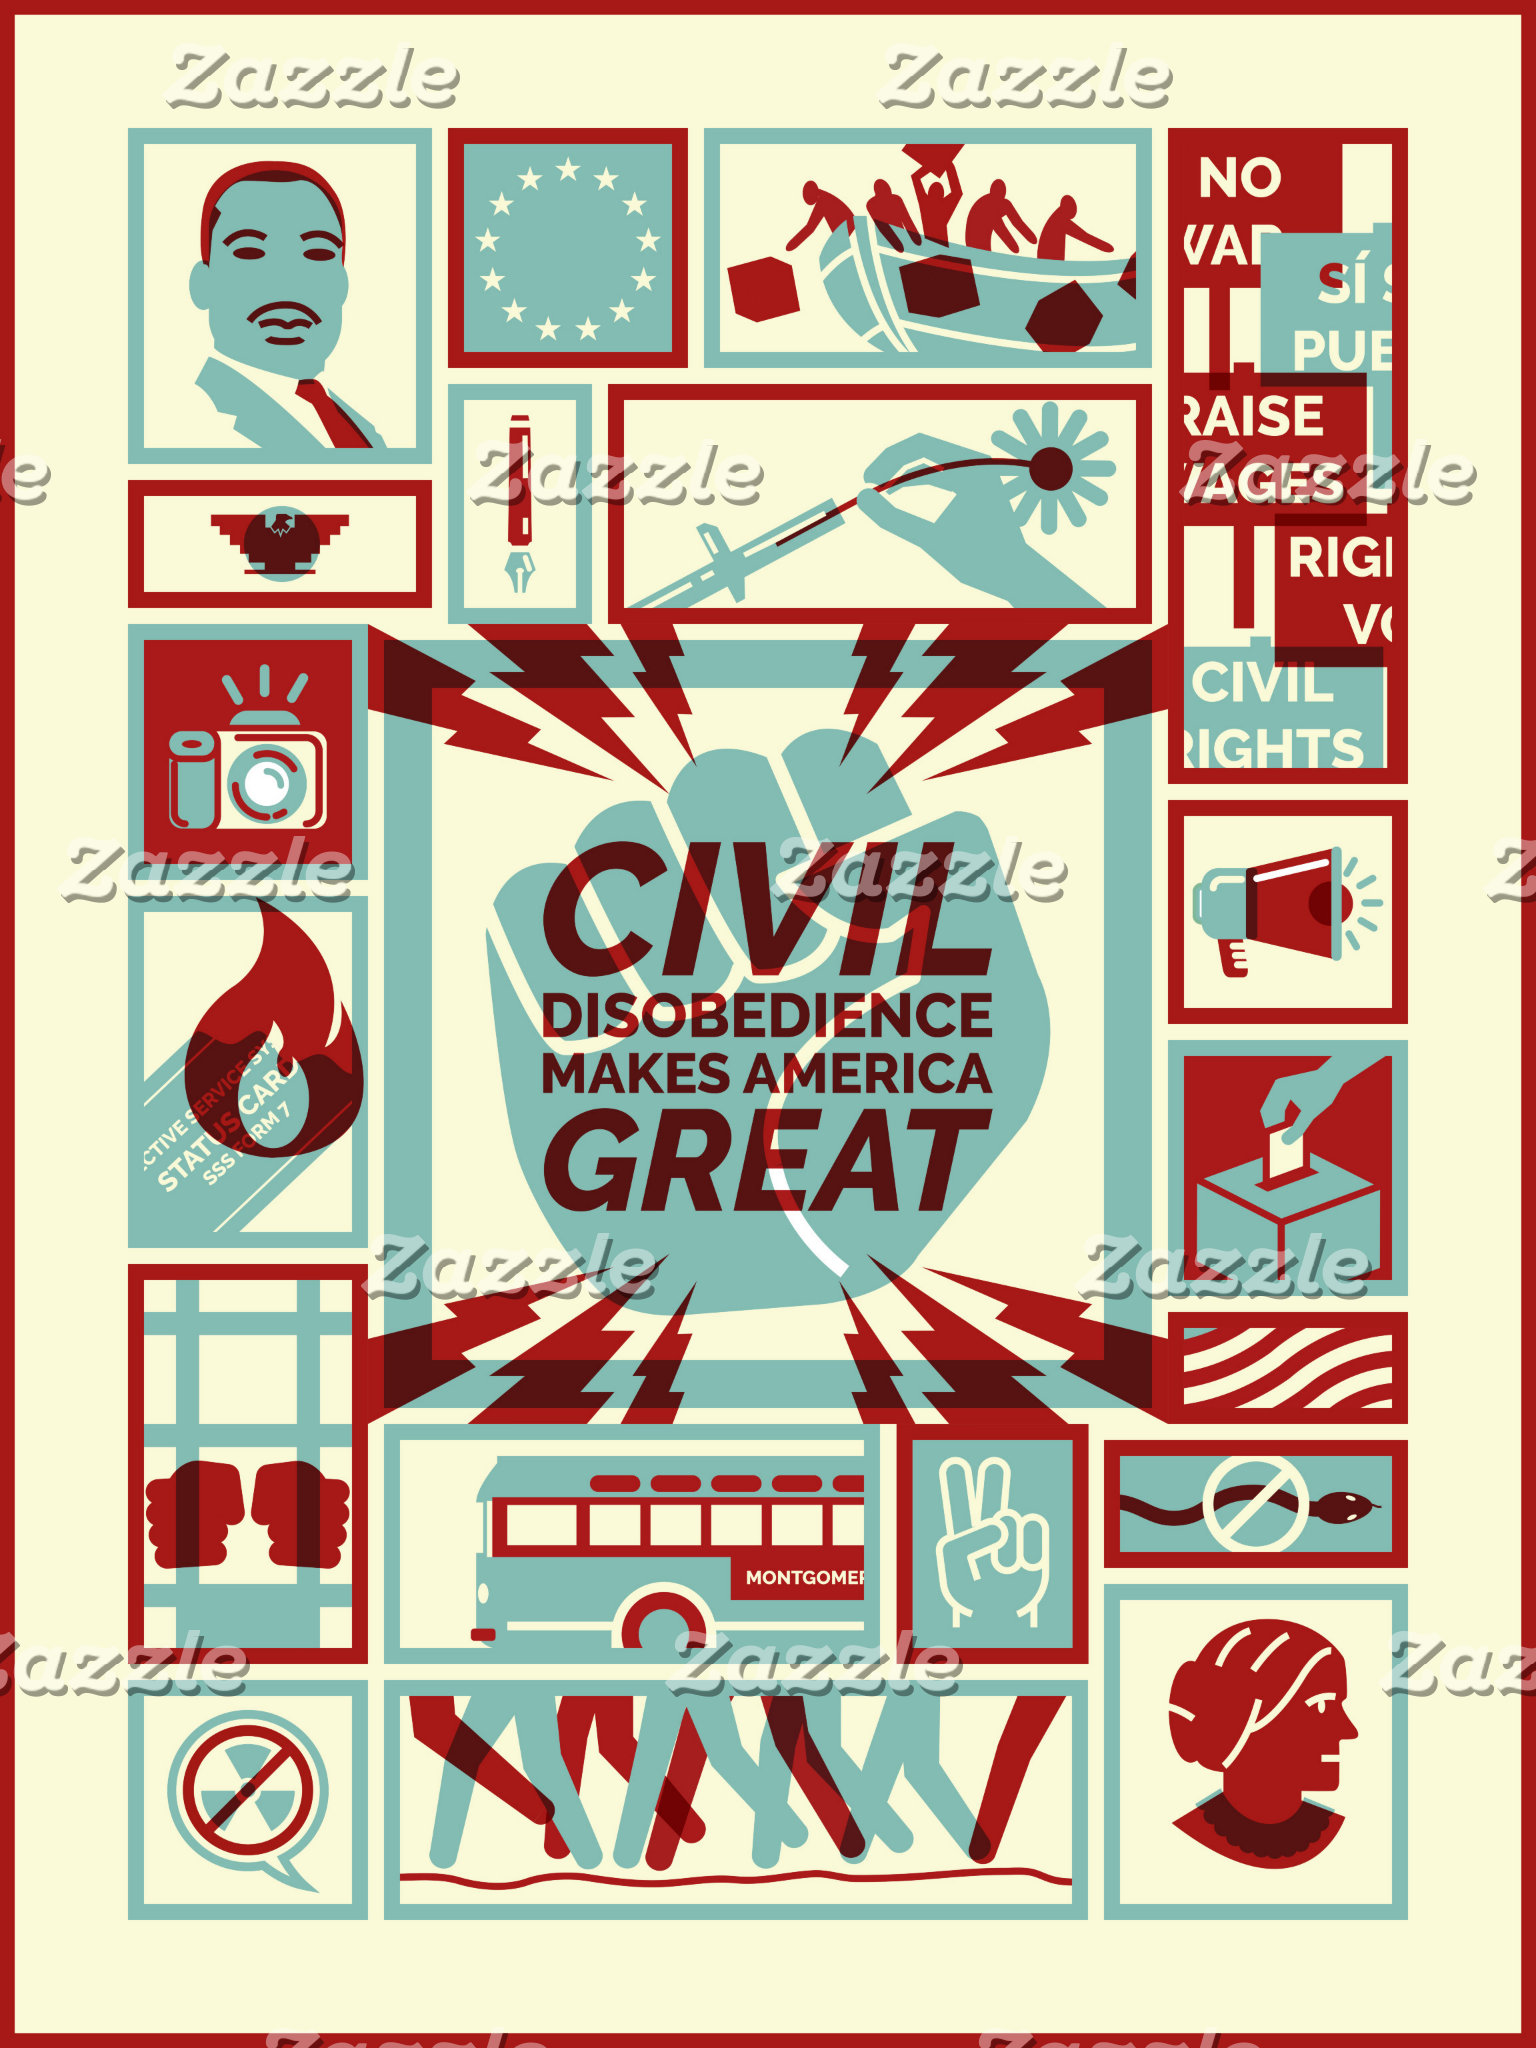 Civil Disobedience Makes America Great